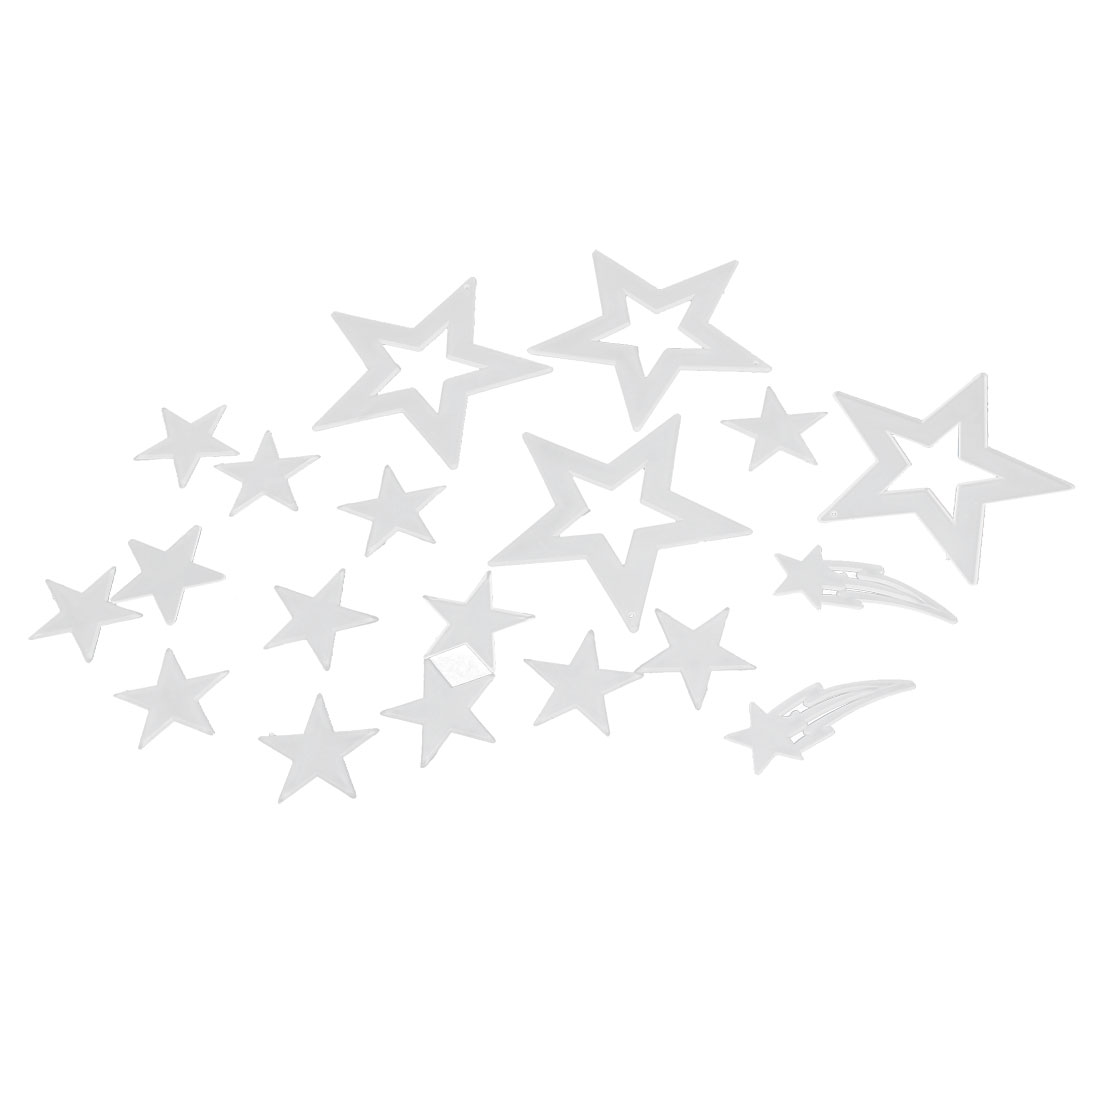 18 Pcs White Plastic Stars Glow In The Dark Fluorescent Sticker Decoration